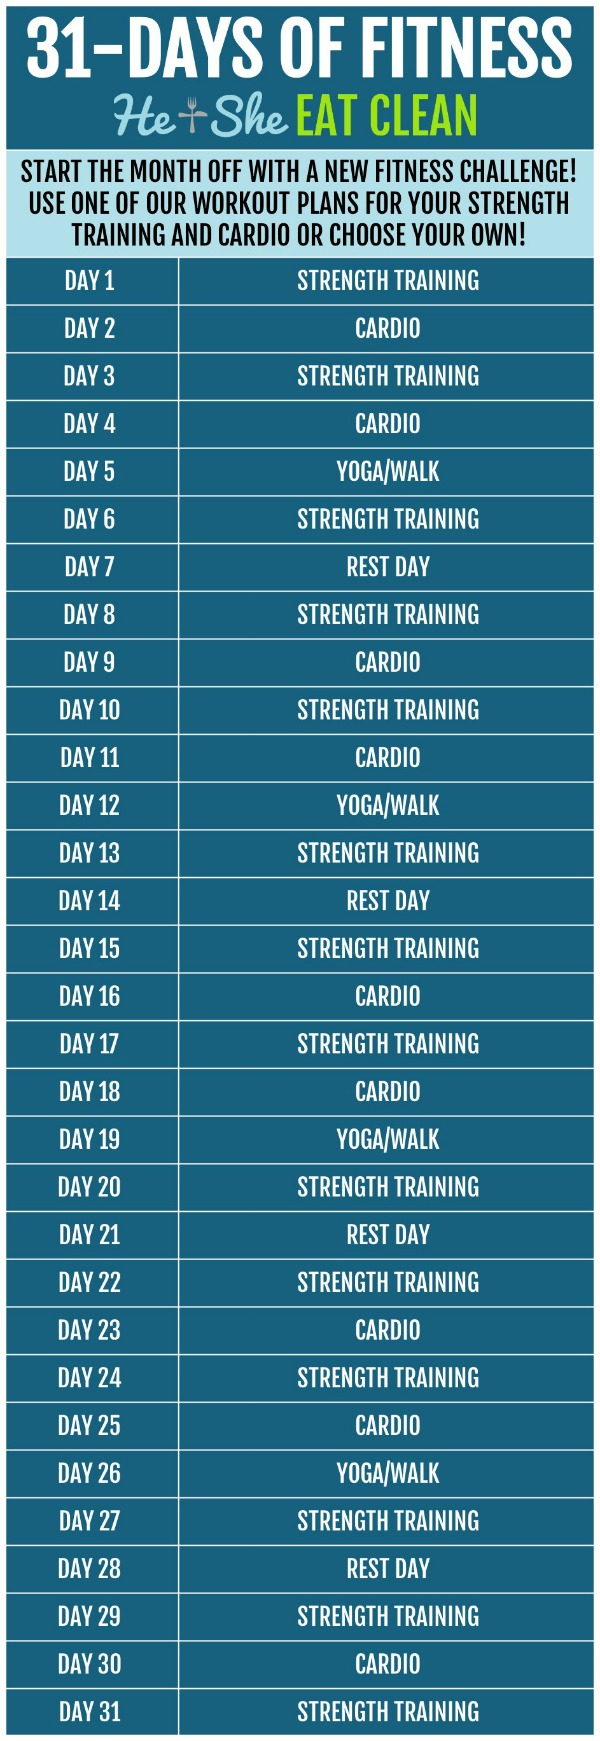 31 days of fitness workout challenge